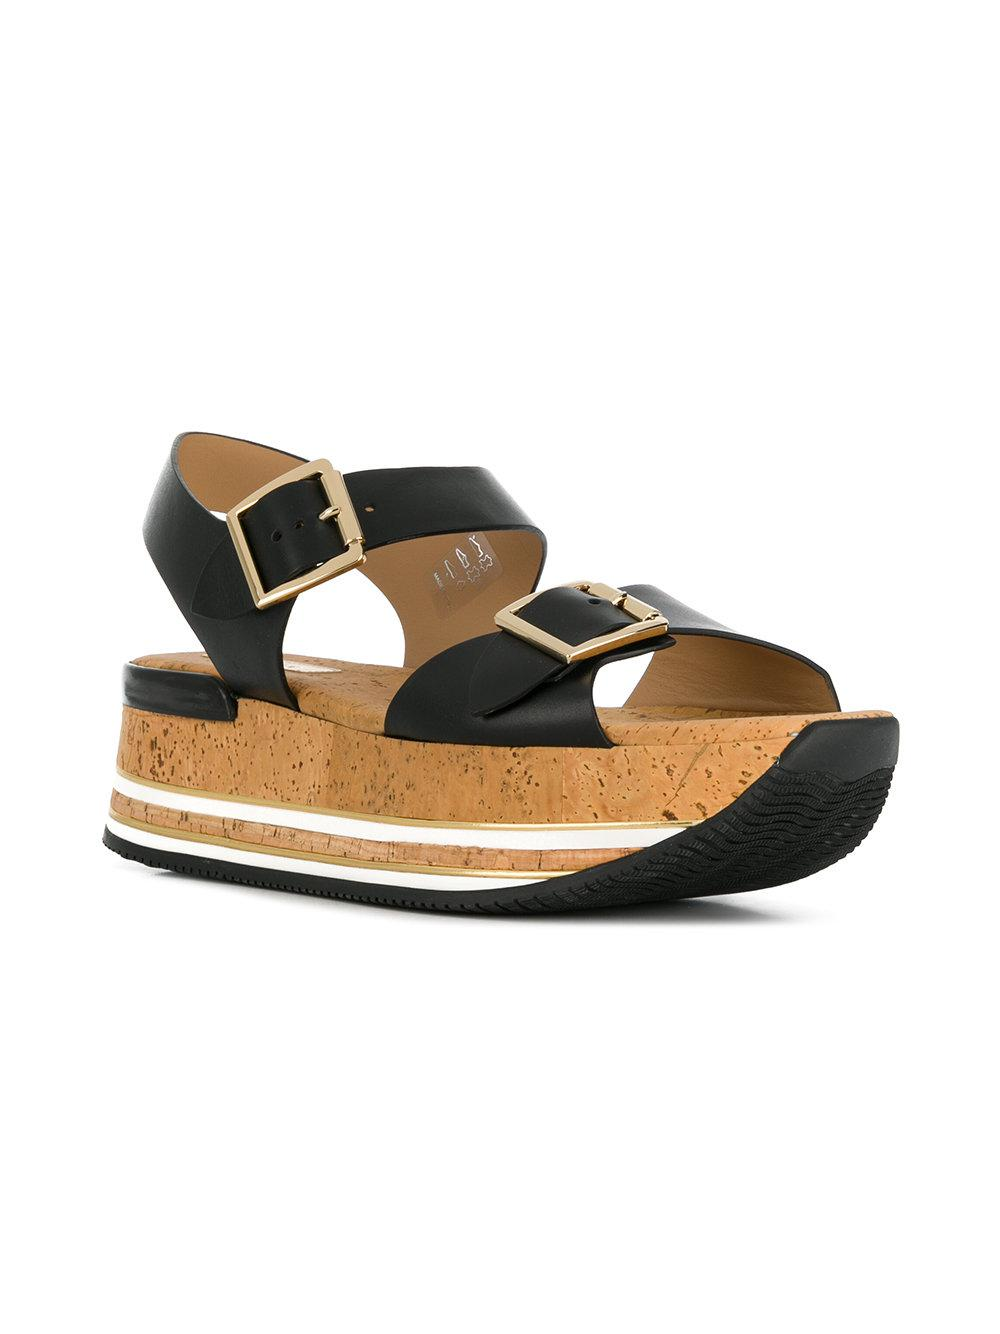 bdc0ef3476f Lyst - Hogan Platform Buckle Sandals in Black